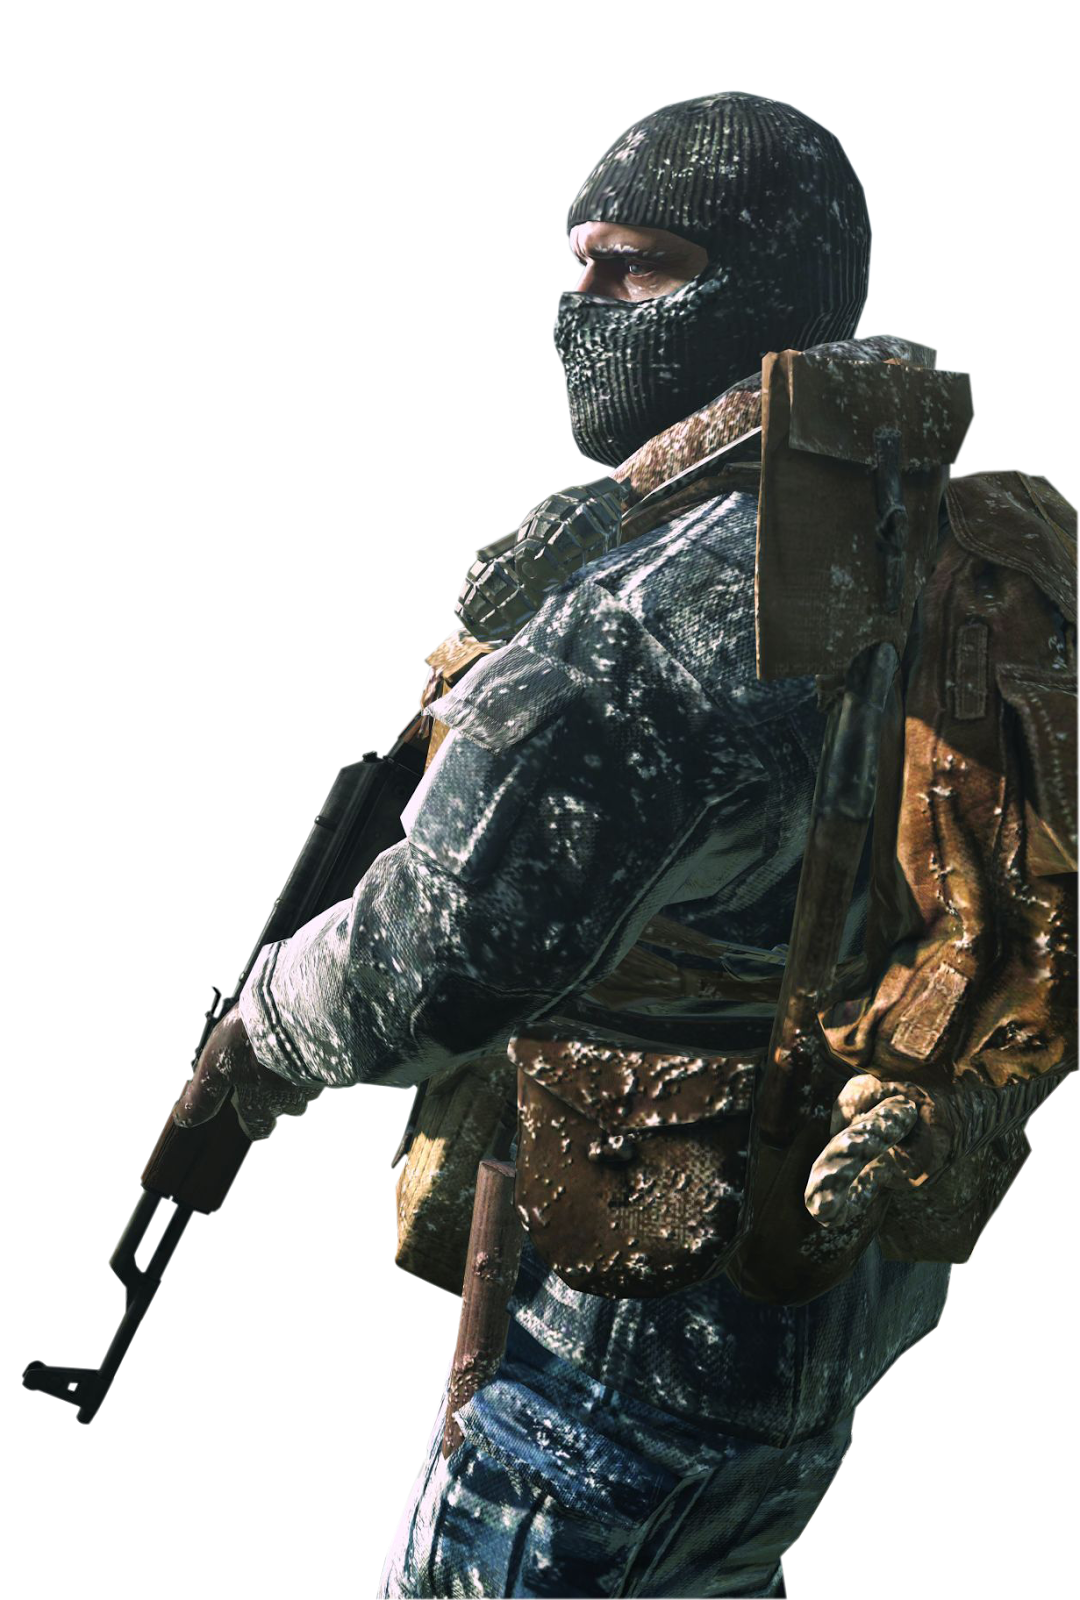 Black ops soldier png. Call of duty ii